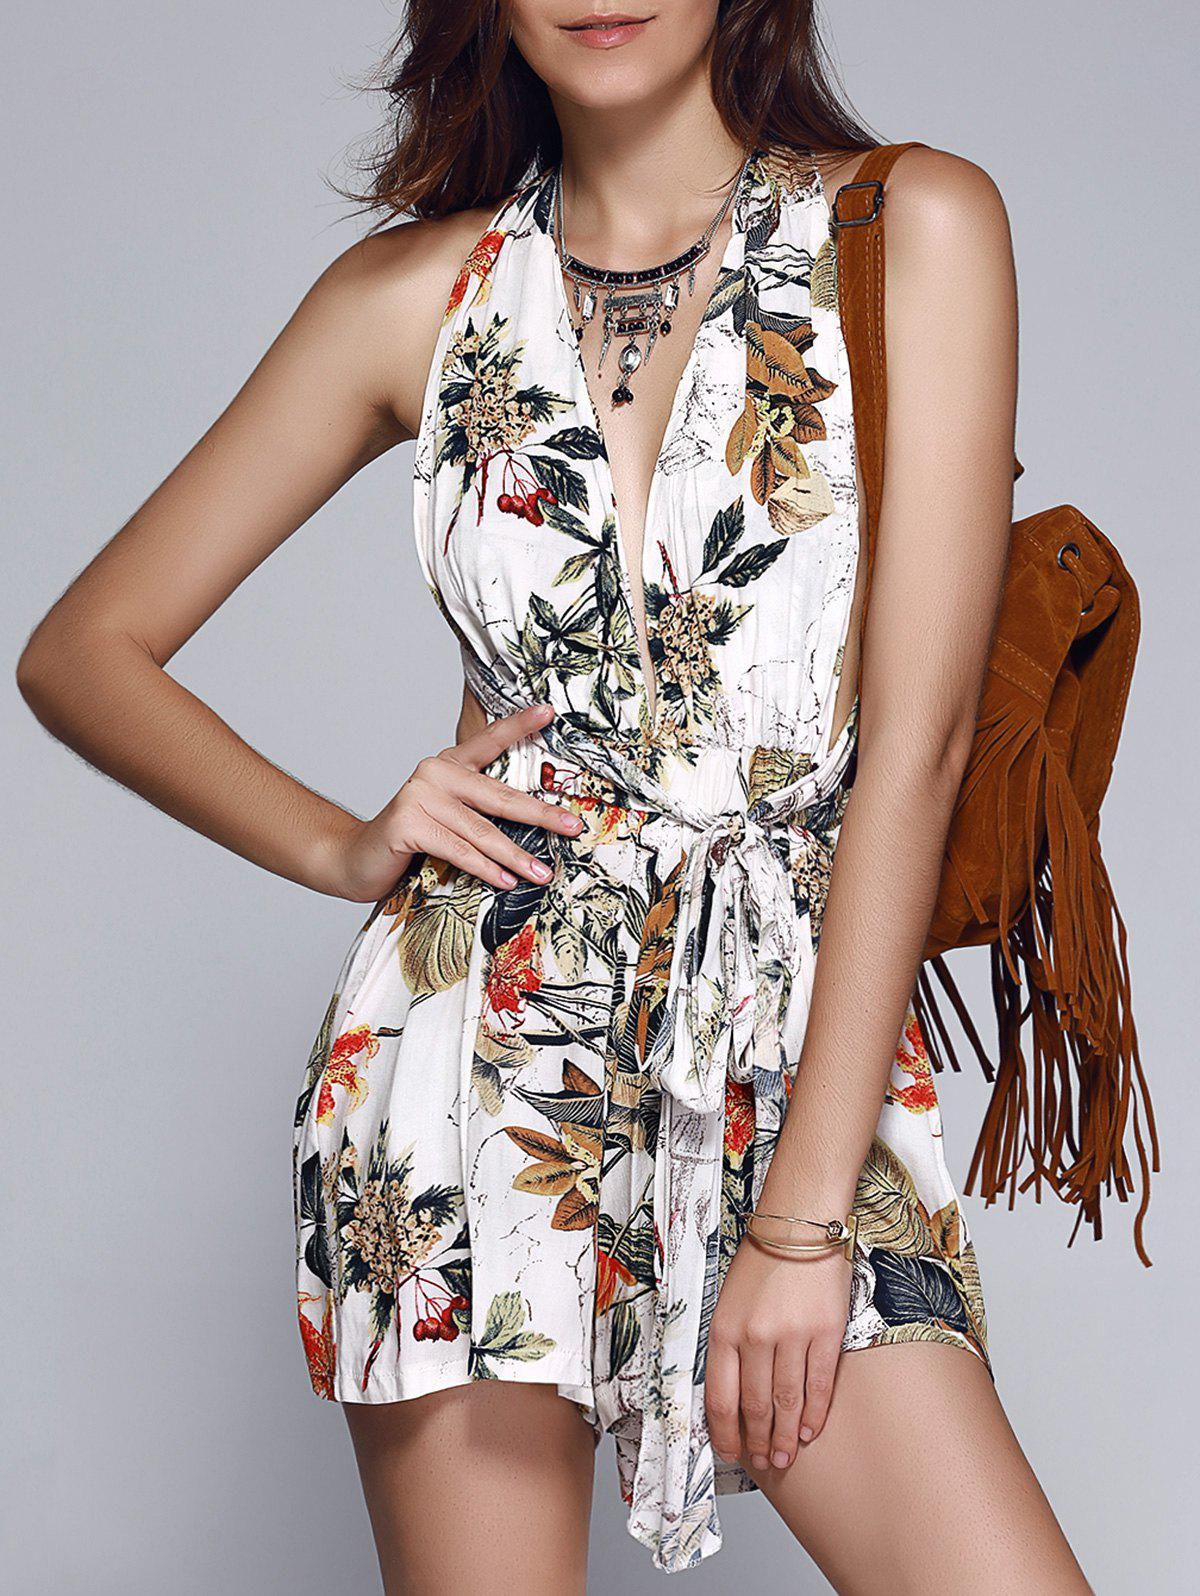 Fashionable Women's Floral Print Tie Backless Romper - COLORMIX ONE SIZE(FIT SIZE XS TO M)